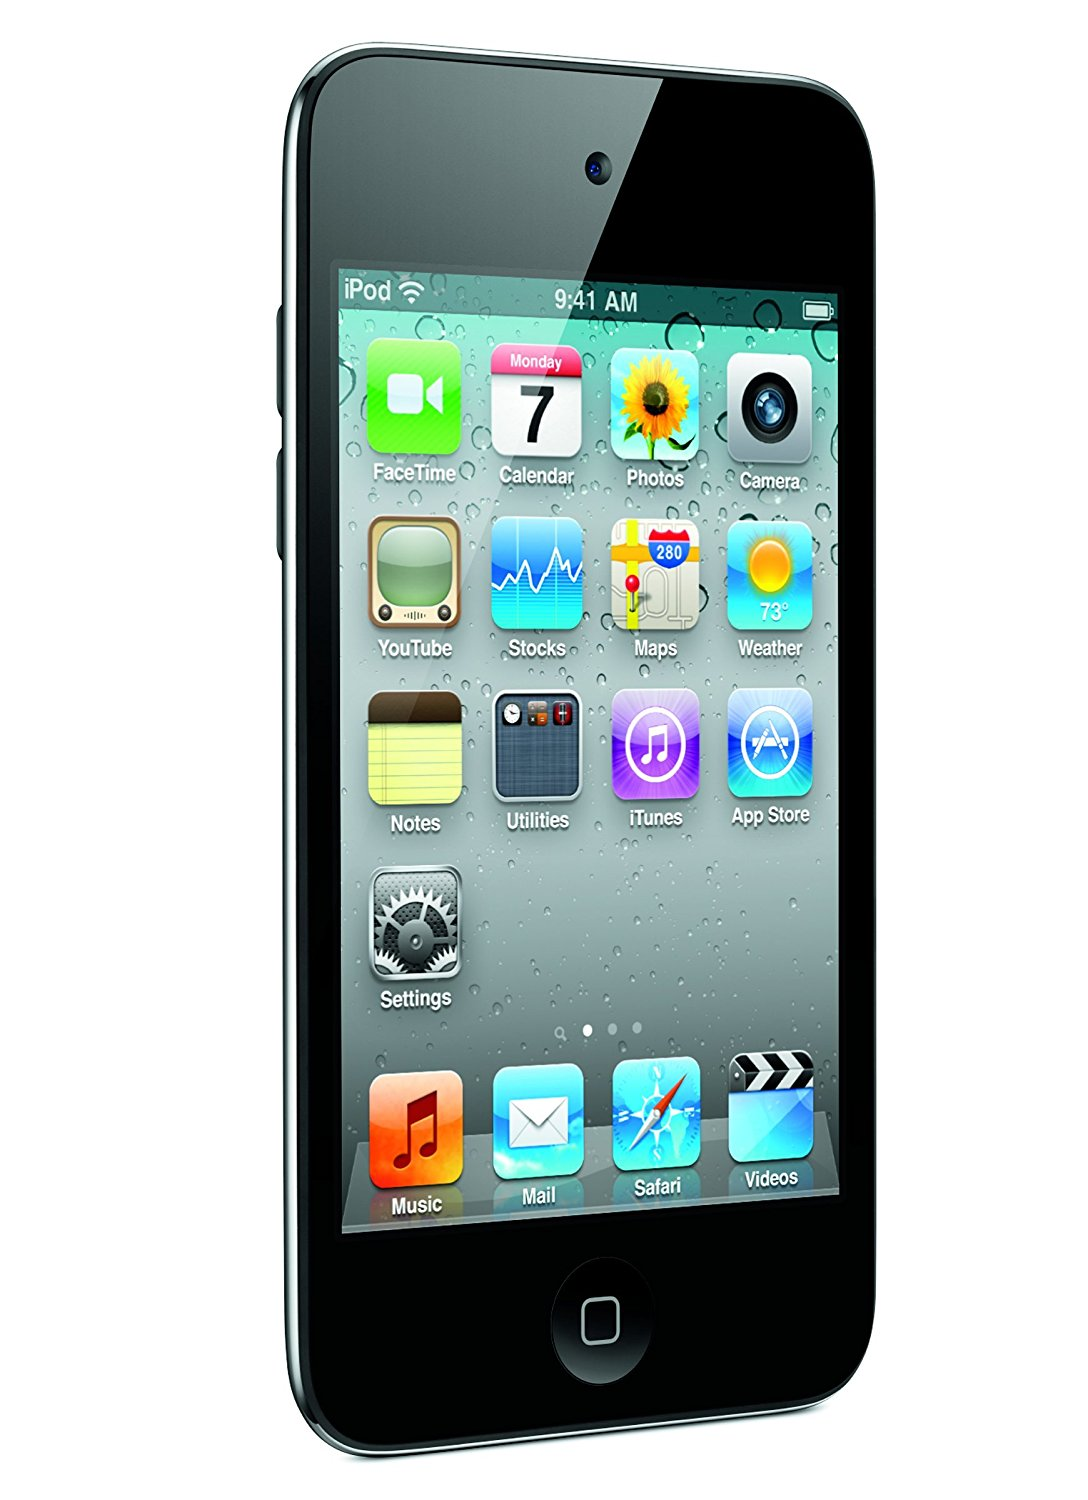 How do you find your ipod nano s password and apple ID